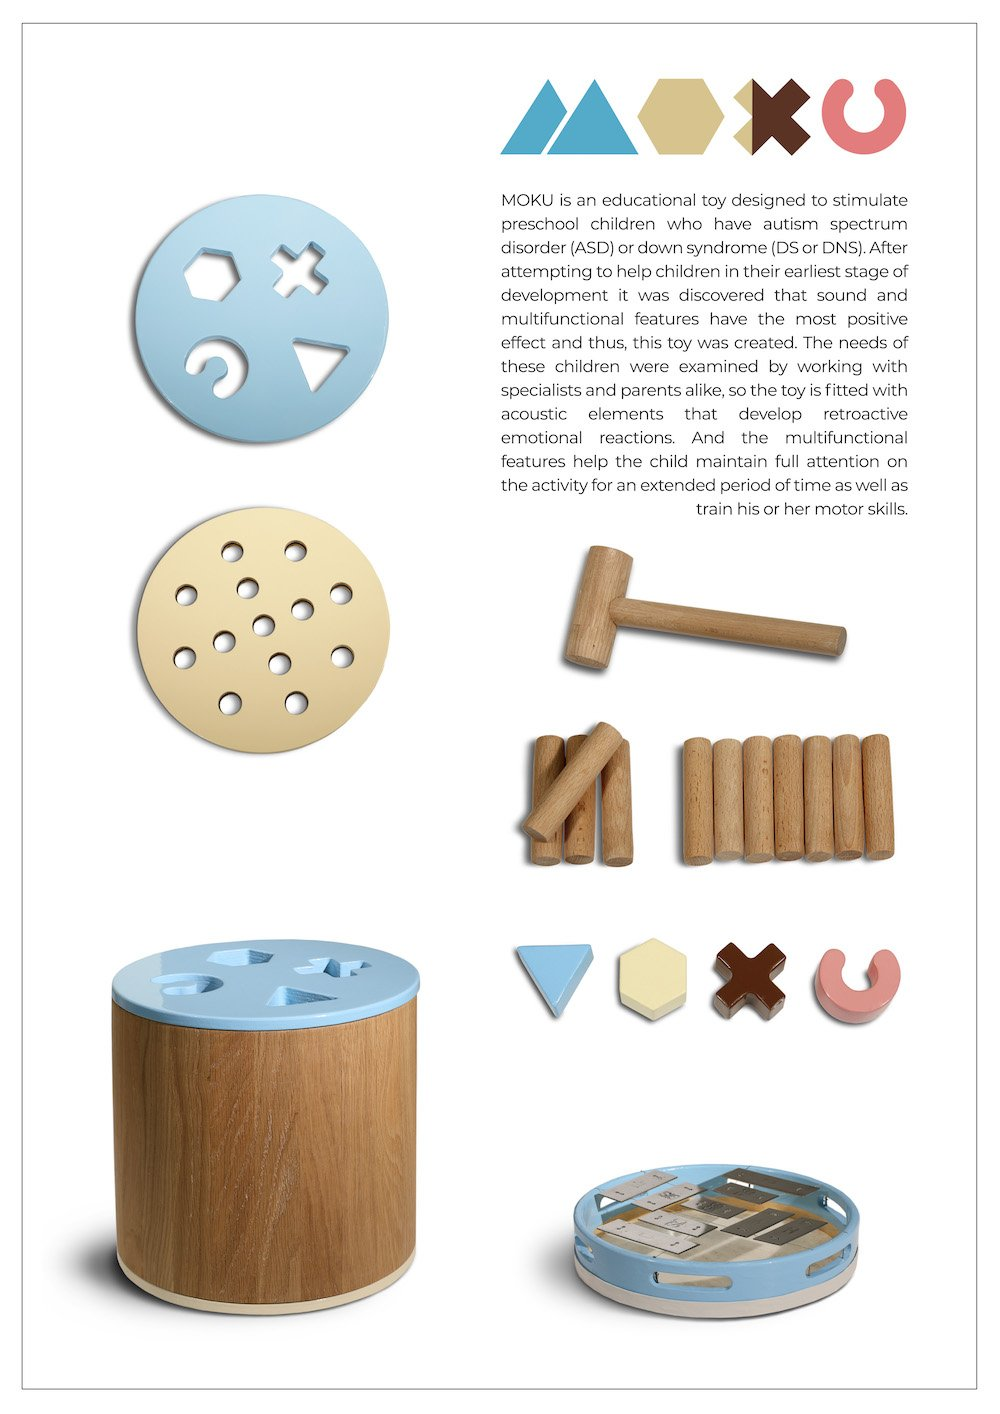 Moku, one of the winning social designs, is an educational acoustic toy to help children with autism or Down's syndrome regulate their emotions